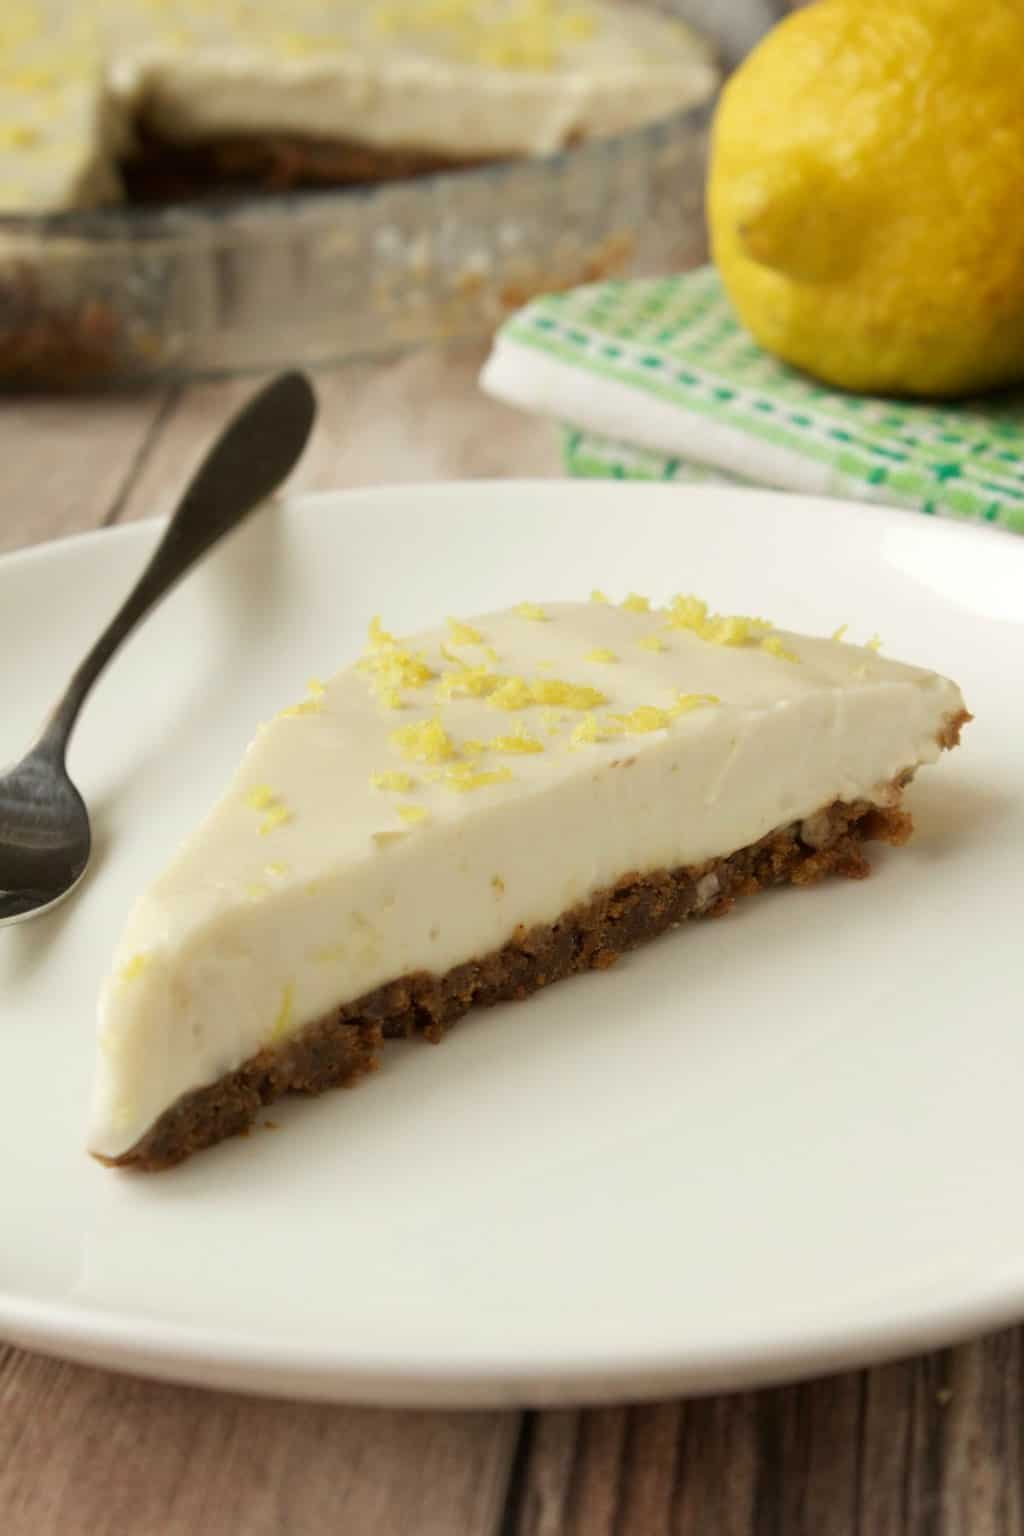 Vegan No Bake Lemon Pie with Ginger Cookie Crust. #vegan #lovingitvegan #dessert #pie #lemonpie